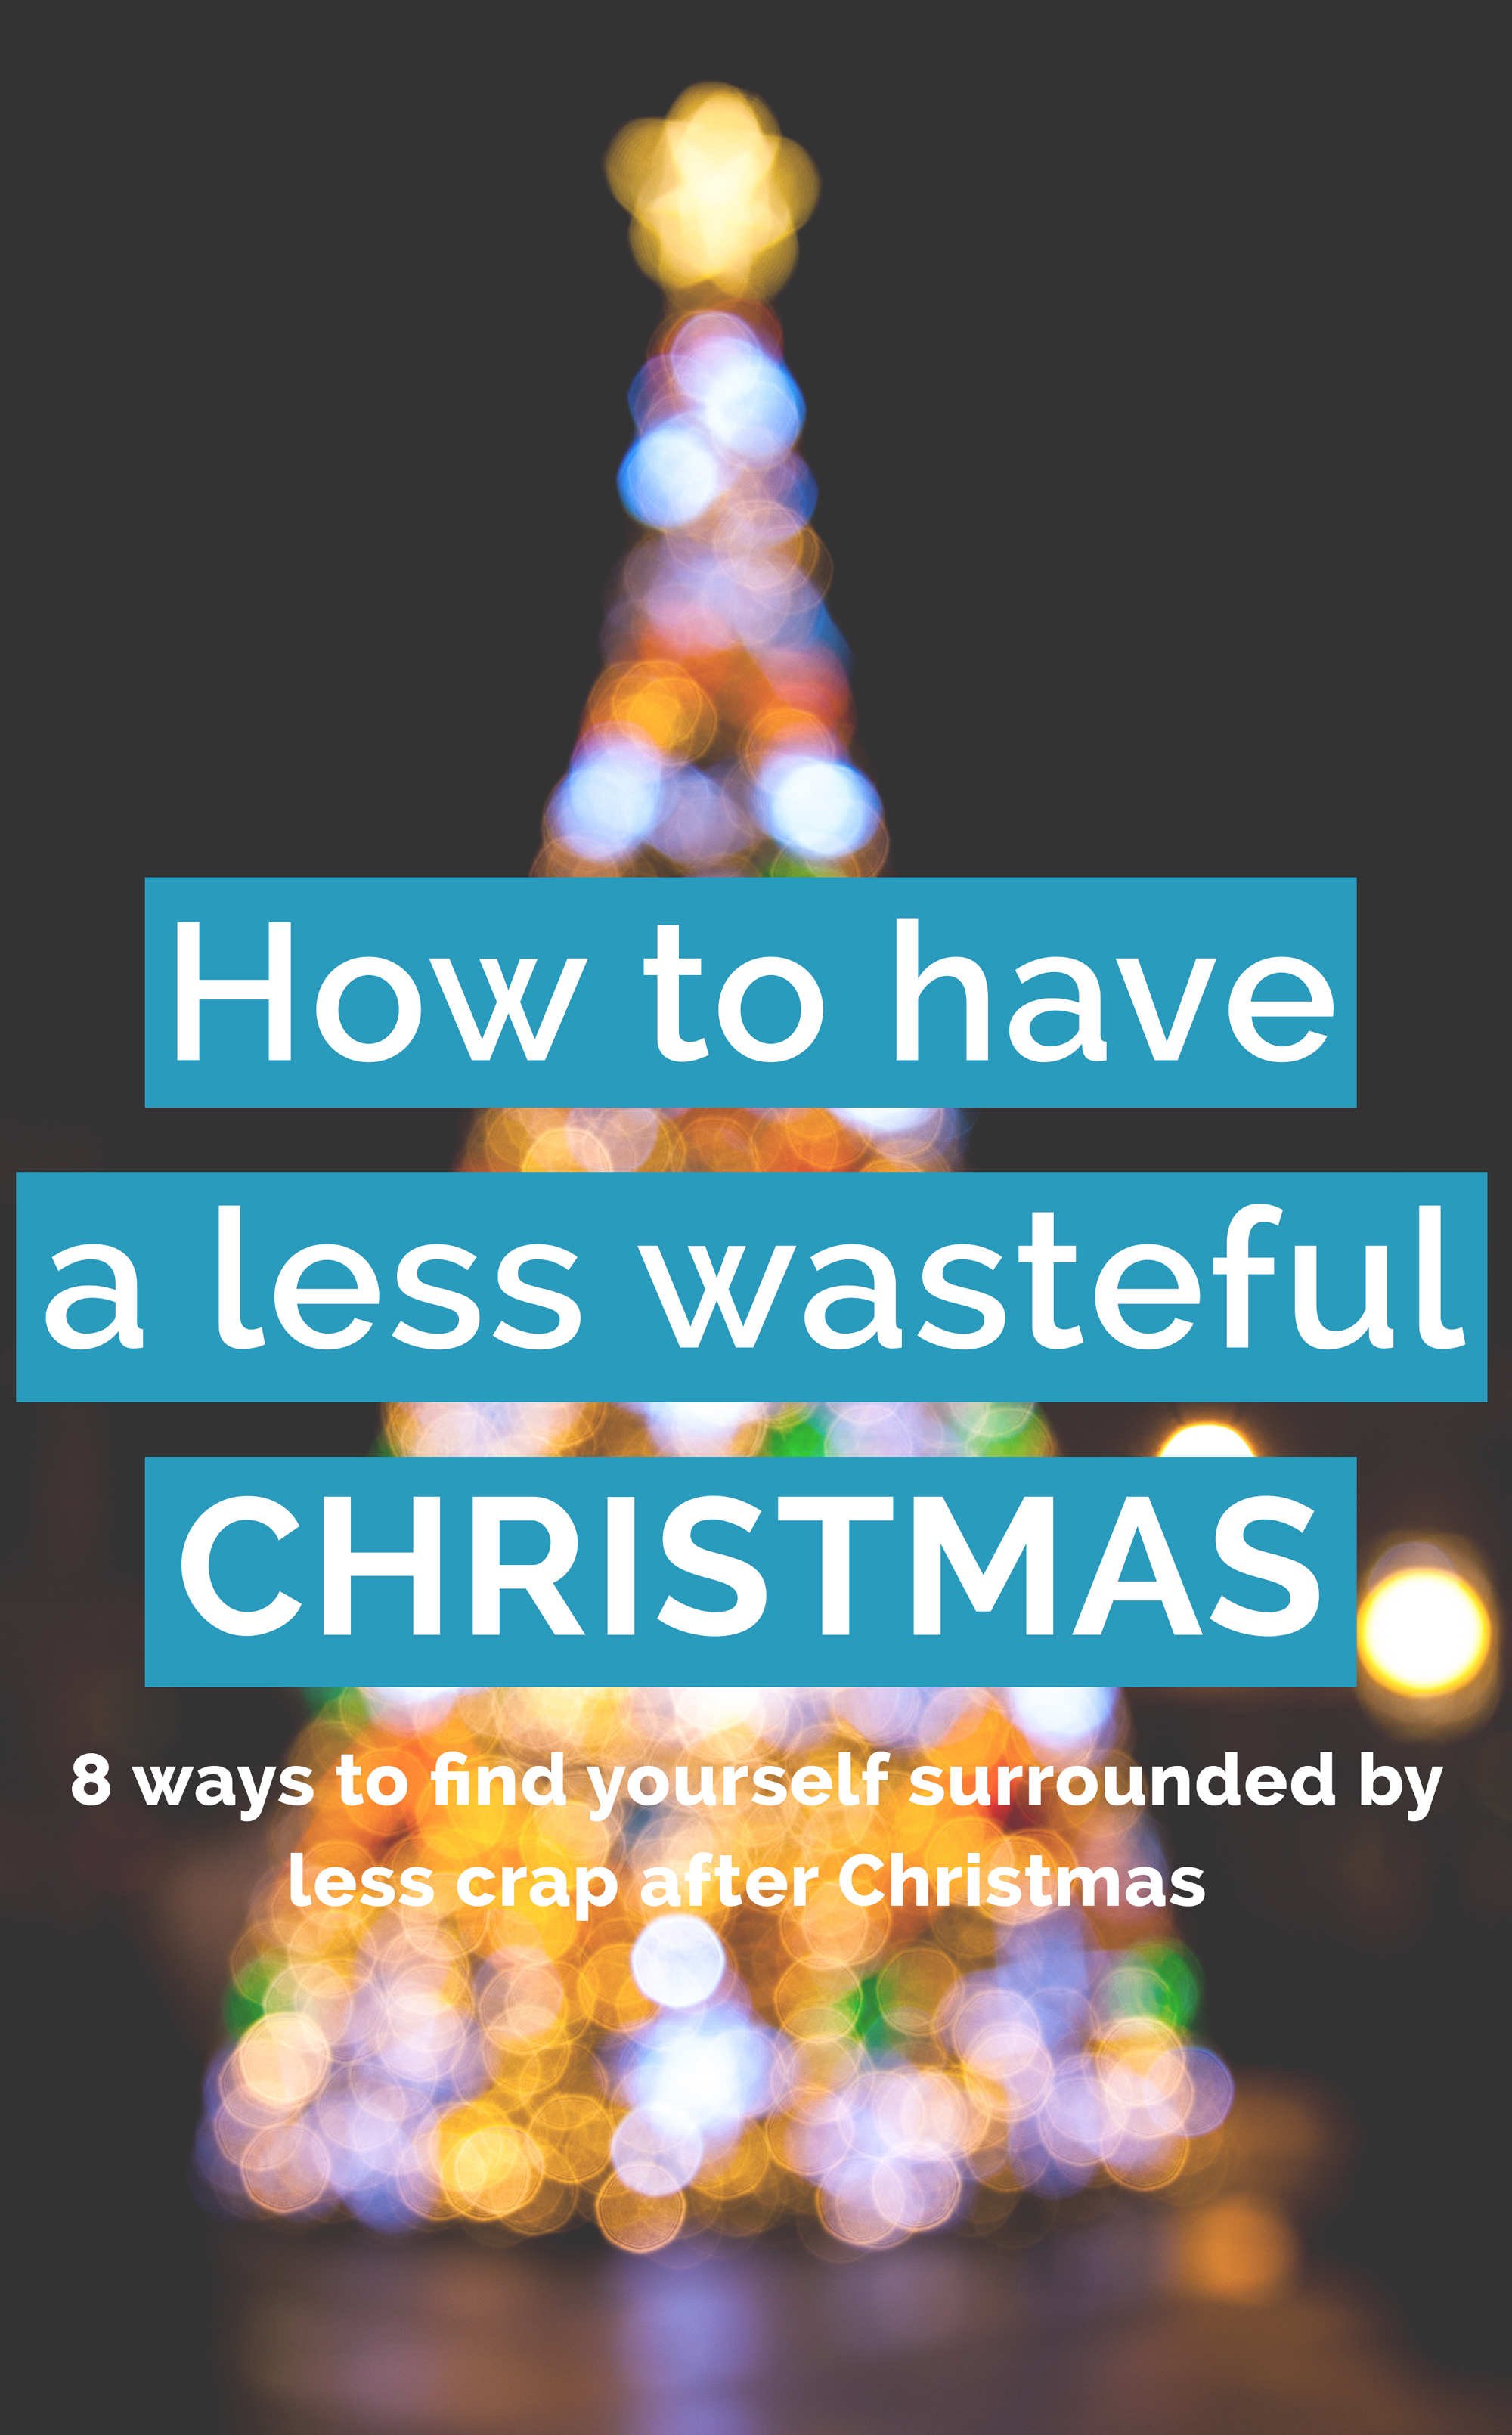 How to have a less wasteful Christmas